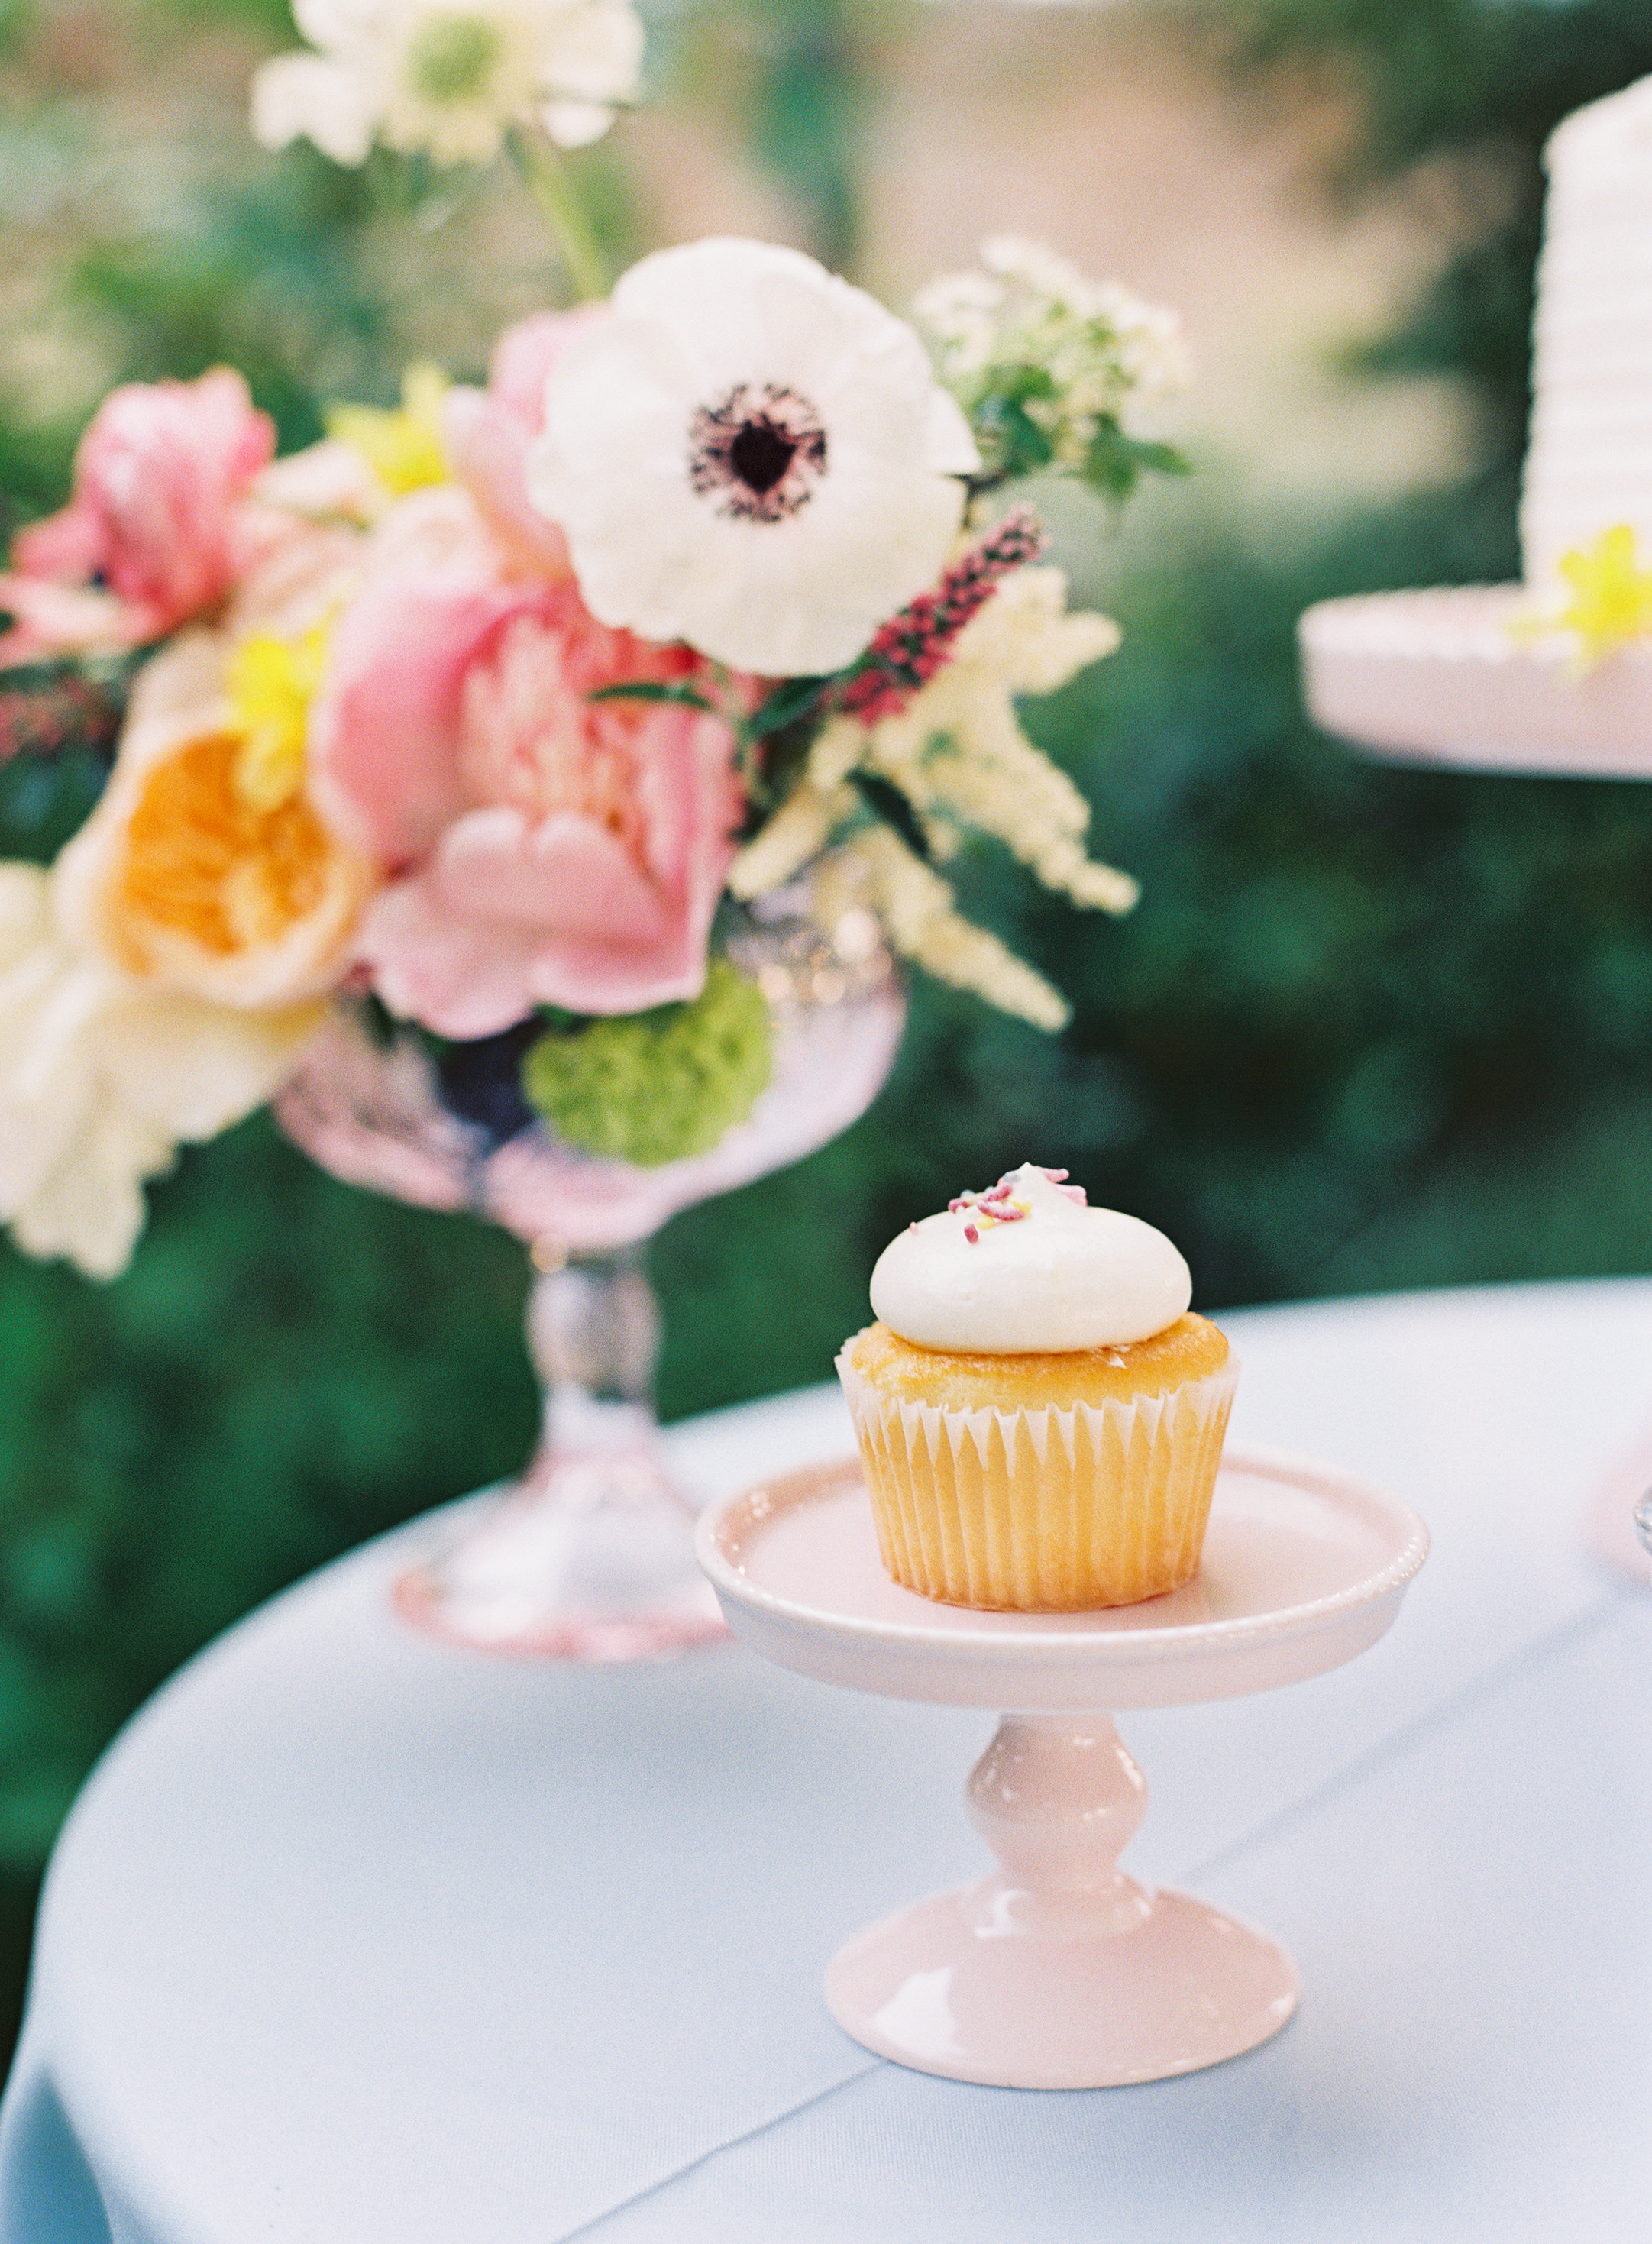 NathalieCheng_Monet_Styled_Shoot_Dessert_Table_Details_001.jpg